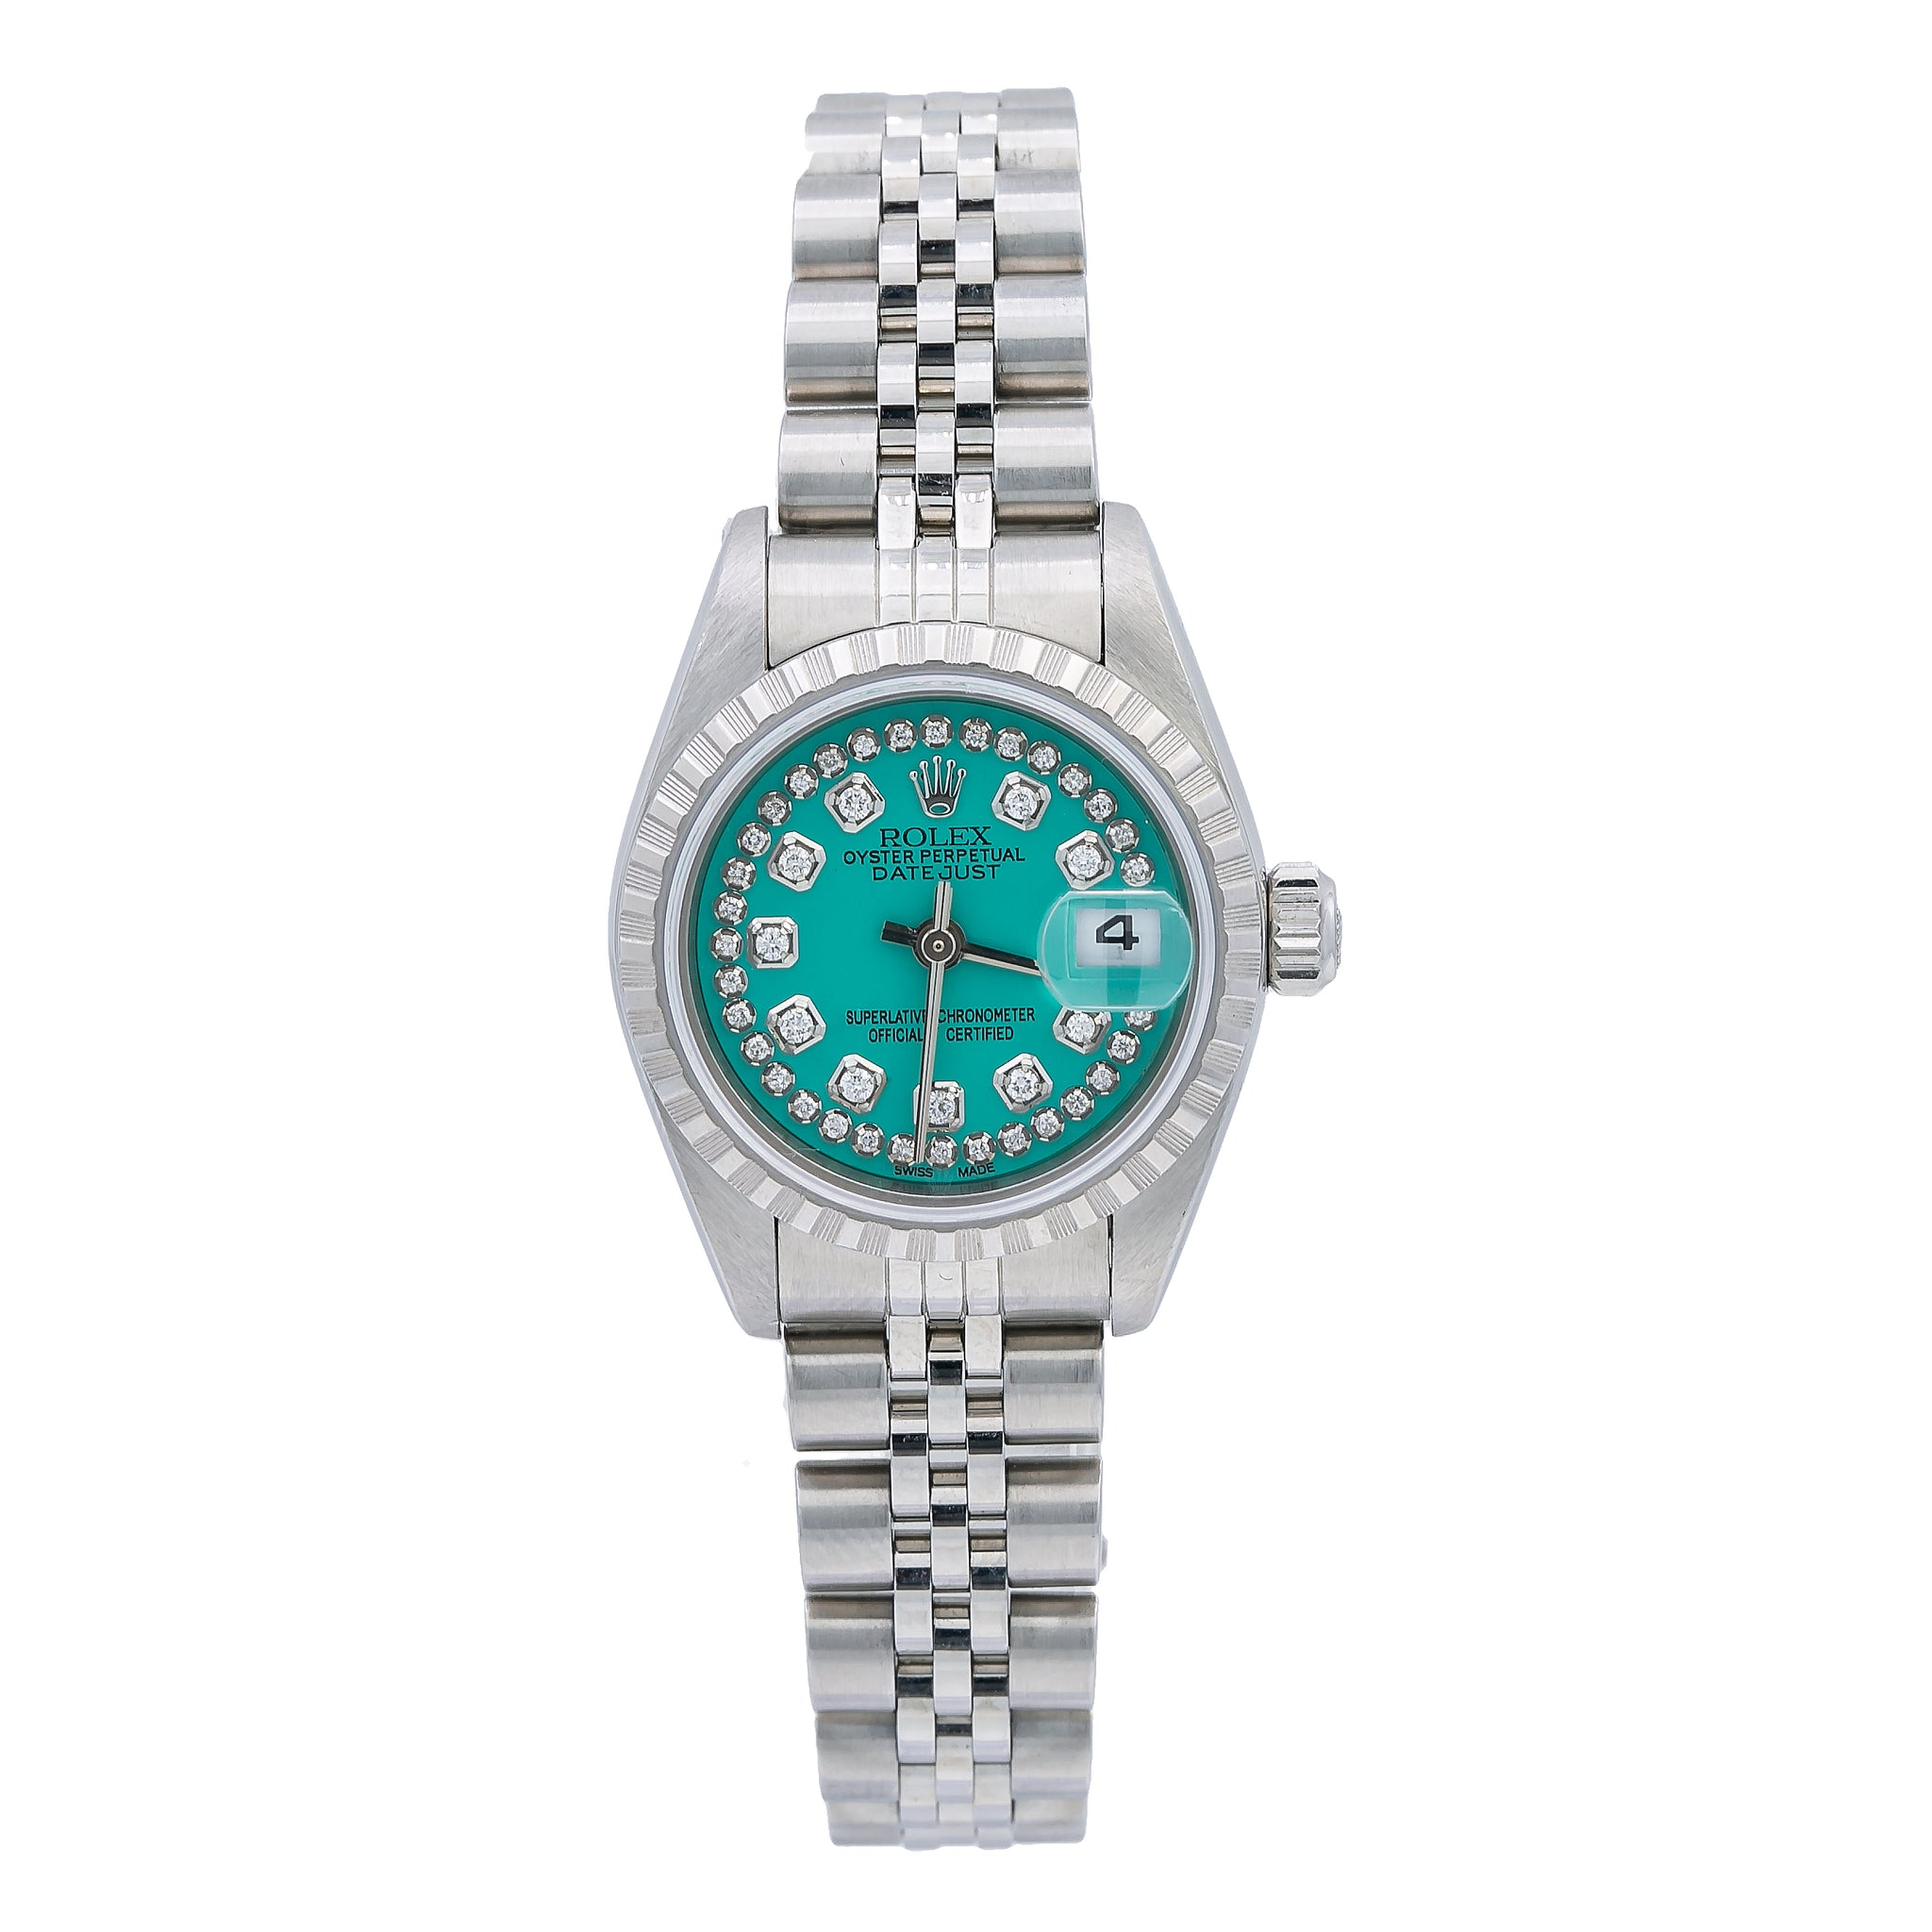 Rolex Oyster Perpetual Lady Date 79240 26MM Blue Green Diamond Dial With Stainless Steel Jubilee Bracelet